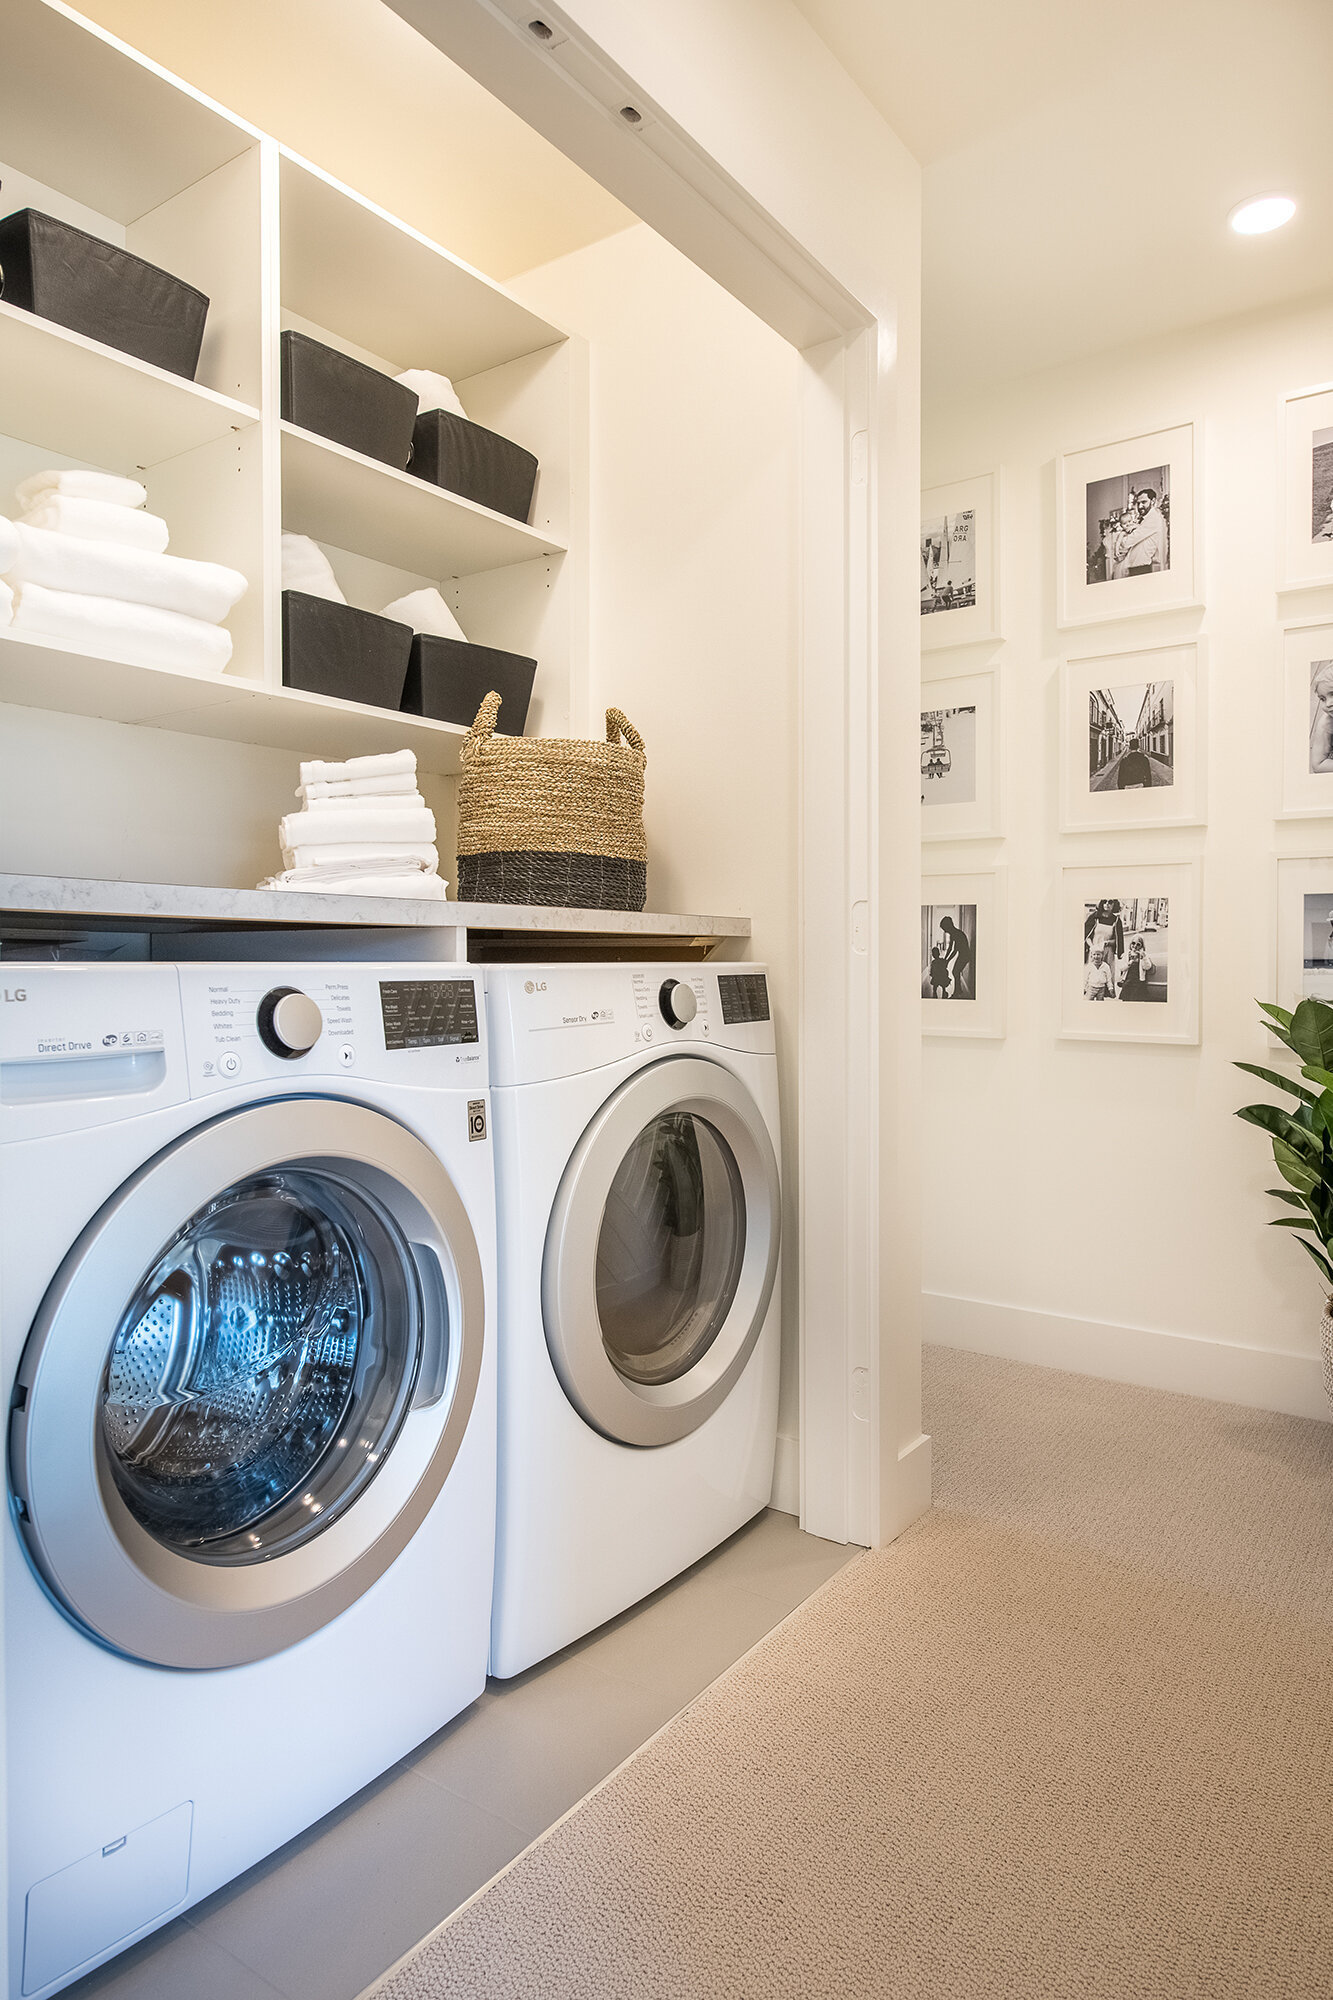 Laundry Area - 2328 167A St, Surrey, BC V3Z 1H2, Canada!